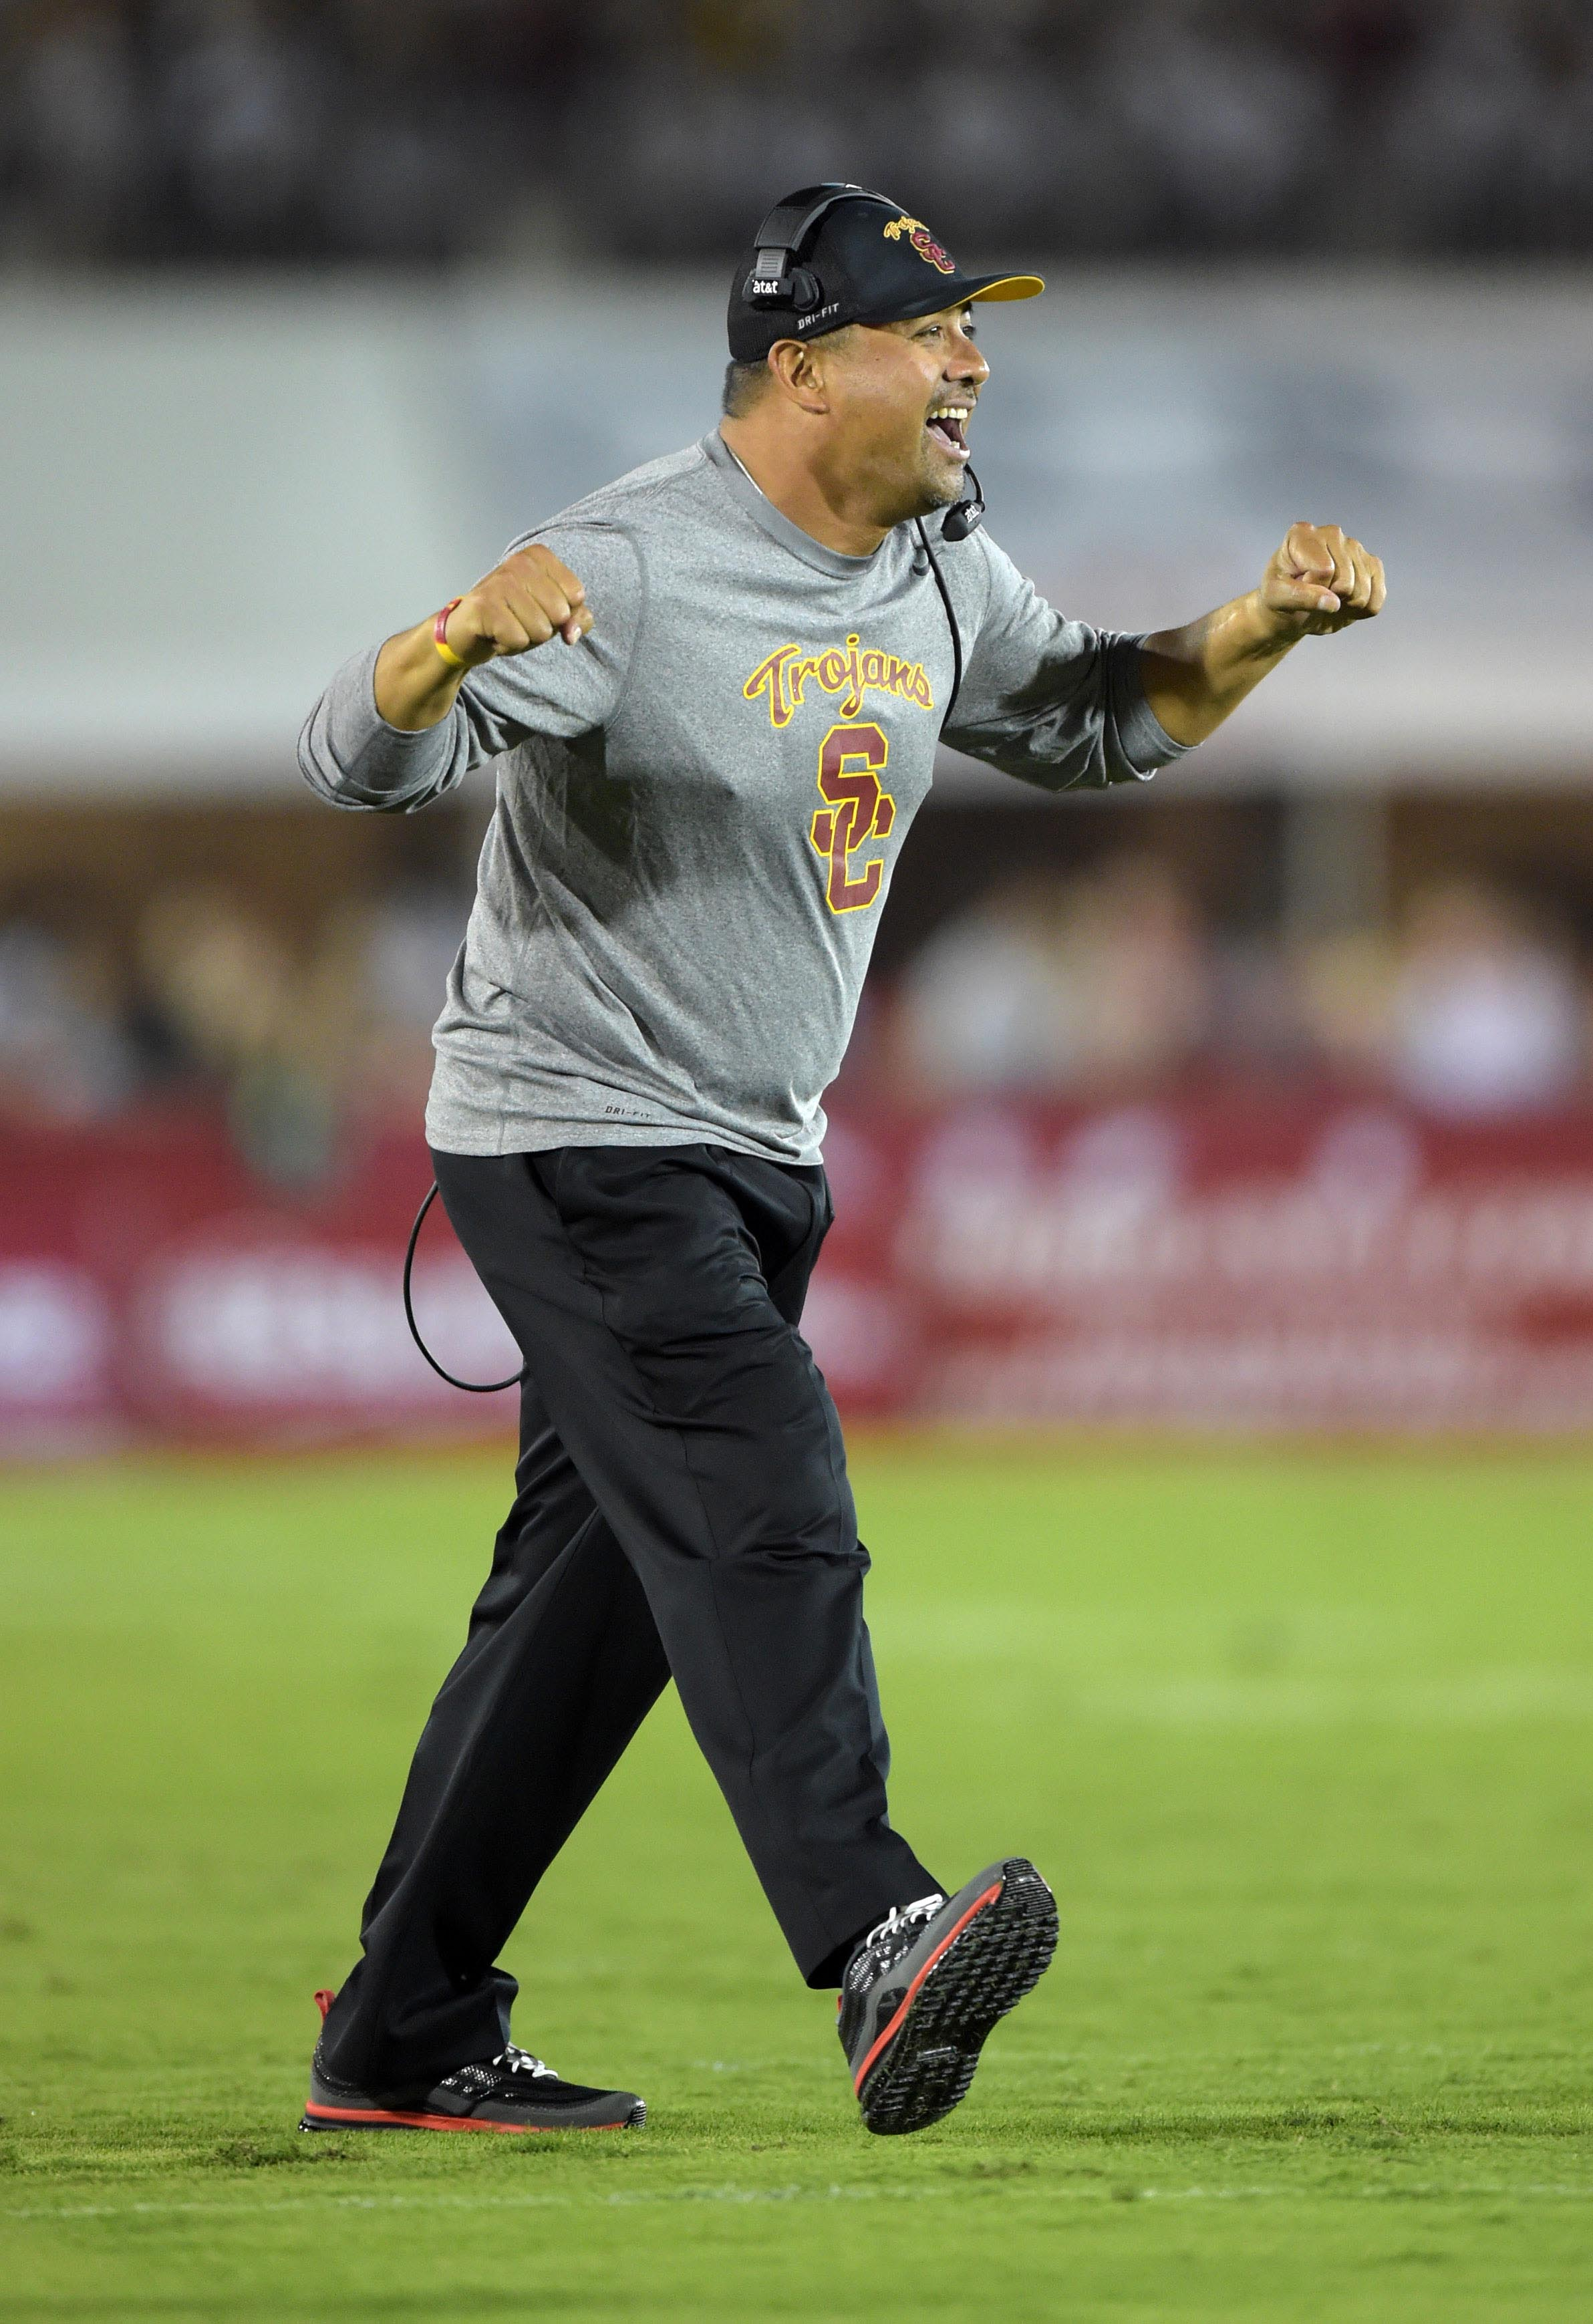 Sep 5, 2015; Los Angeles, CA, USA; Southern California running backs coach Johnny Nansen celebrates after a Trojans touchdown against the Arkansas State Red Wolves at Los Angeles Memorial Coliseum. Mandatory Credit: Kirby Lee-USA TODAY Sports